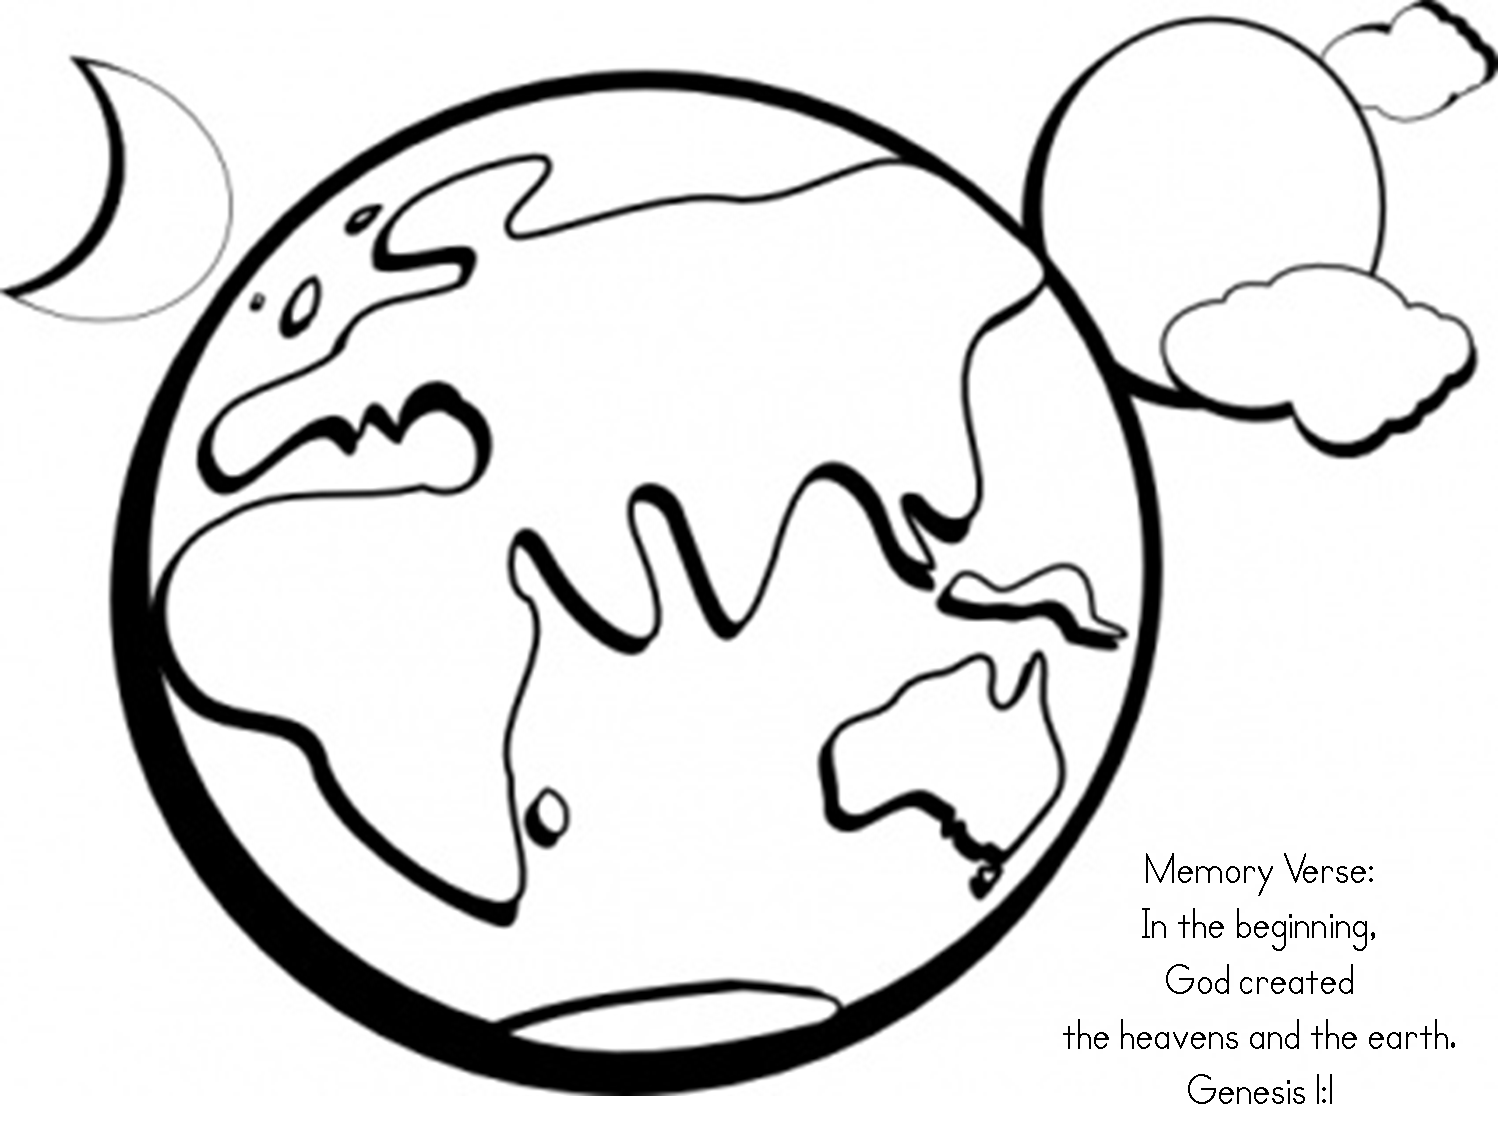 Jesus Storybook Bible Preschool Lesson Genesis 1 2 Earth Coloring Pages Bible Coloring Pages Earth Day Coloring Pages